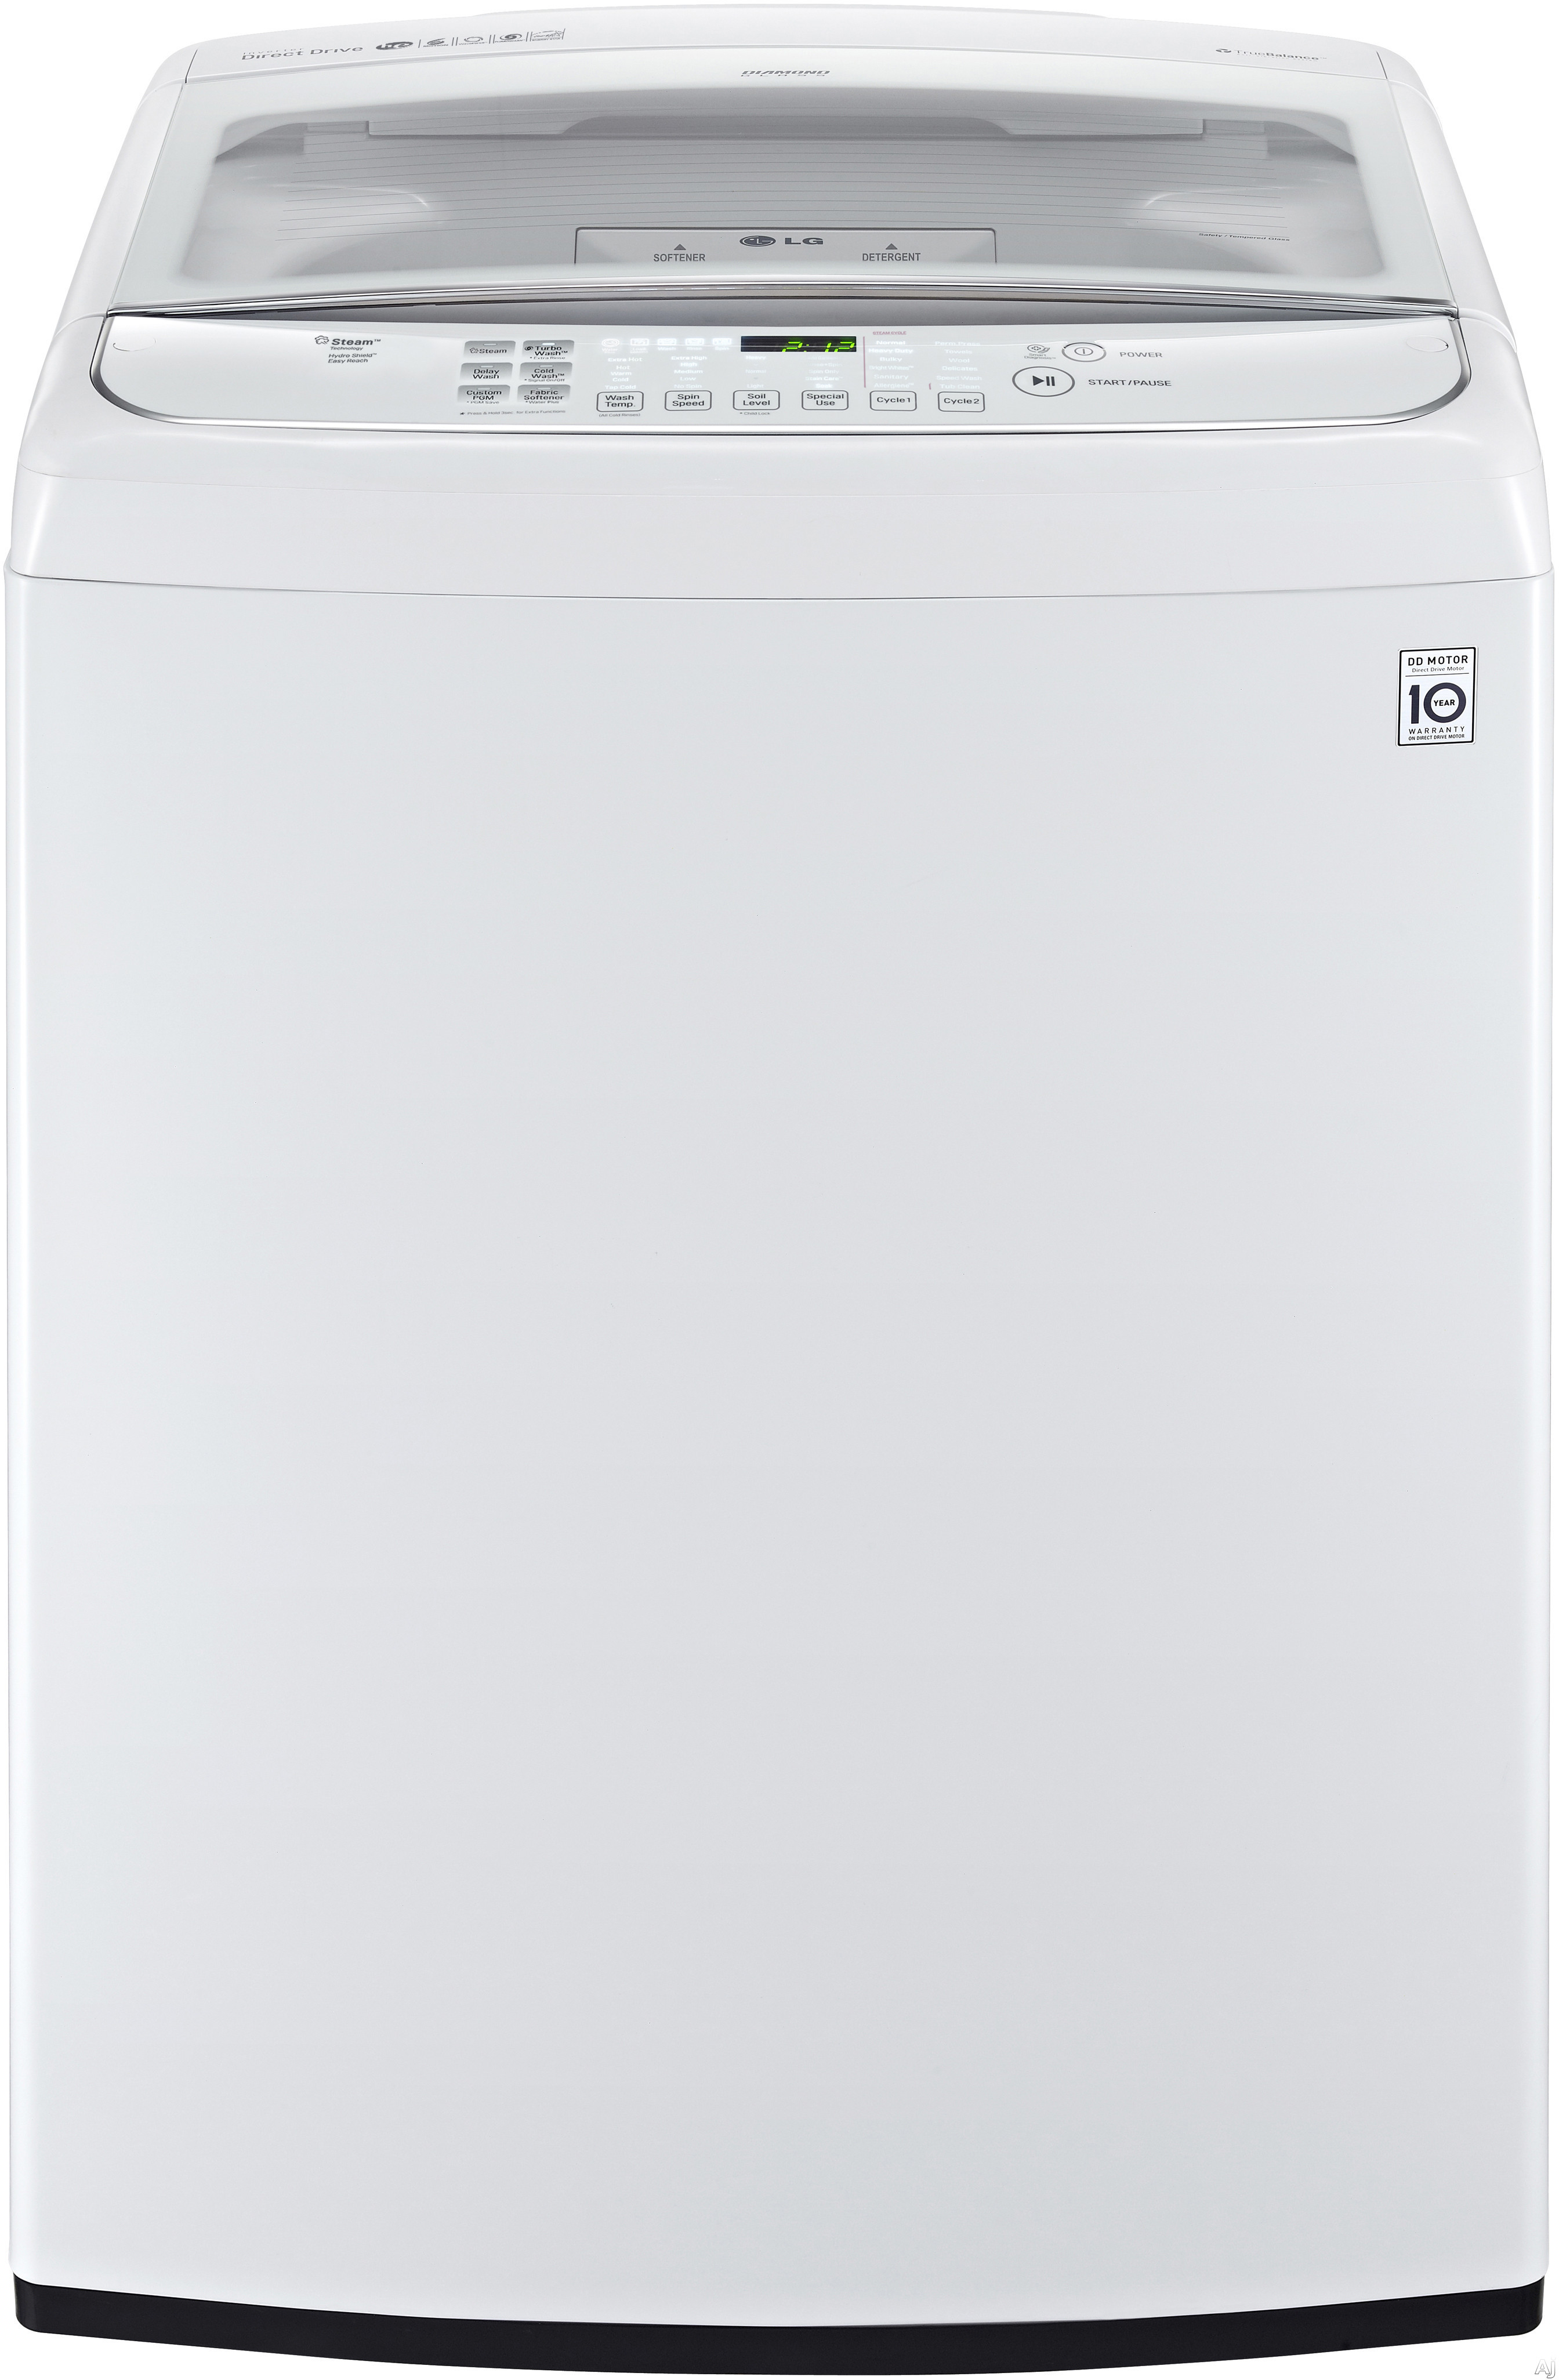 """White Top Load Laundry Pair with WT1801HWA 27"""""""" Washer and DLGY1702W 27"""""""" Gas"""" 391249"""